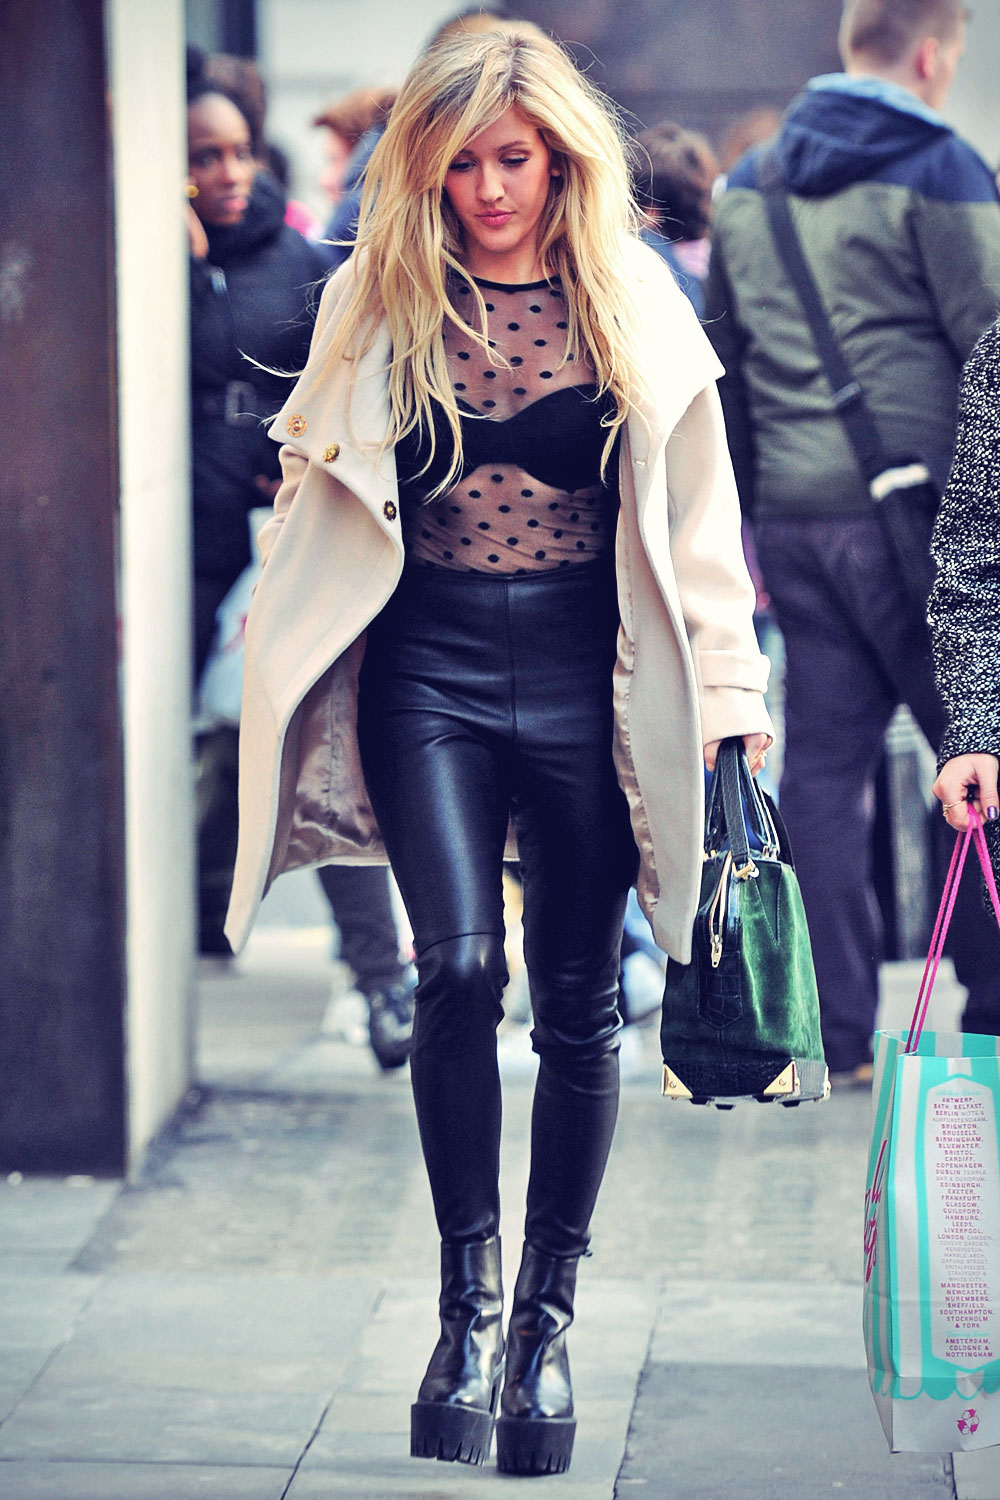 Ellie Goulding shopping at Urban Outfitters